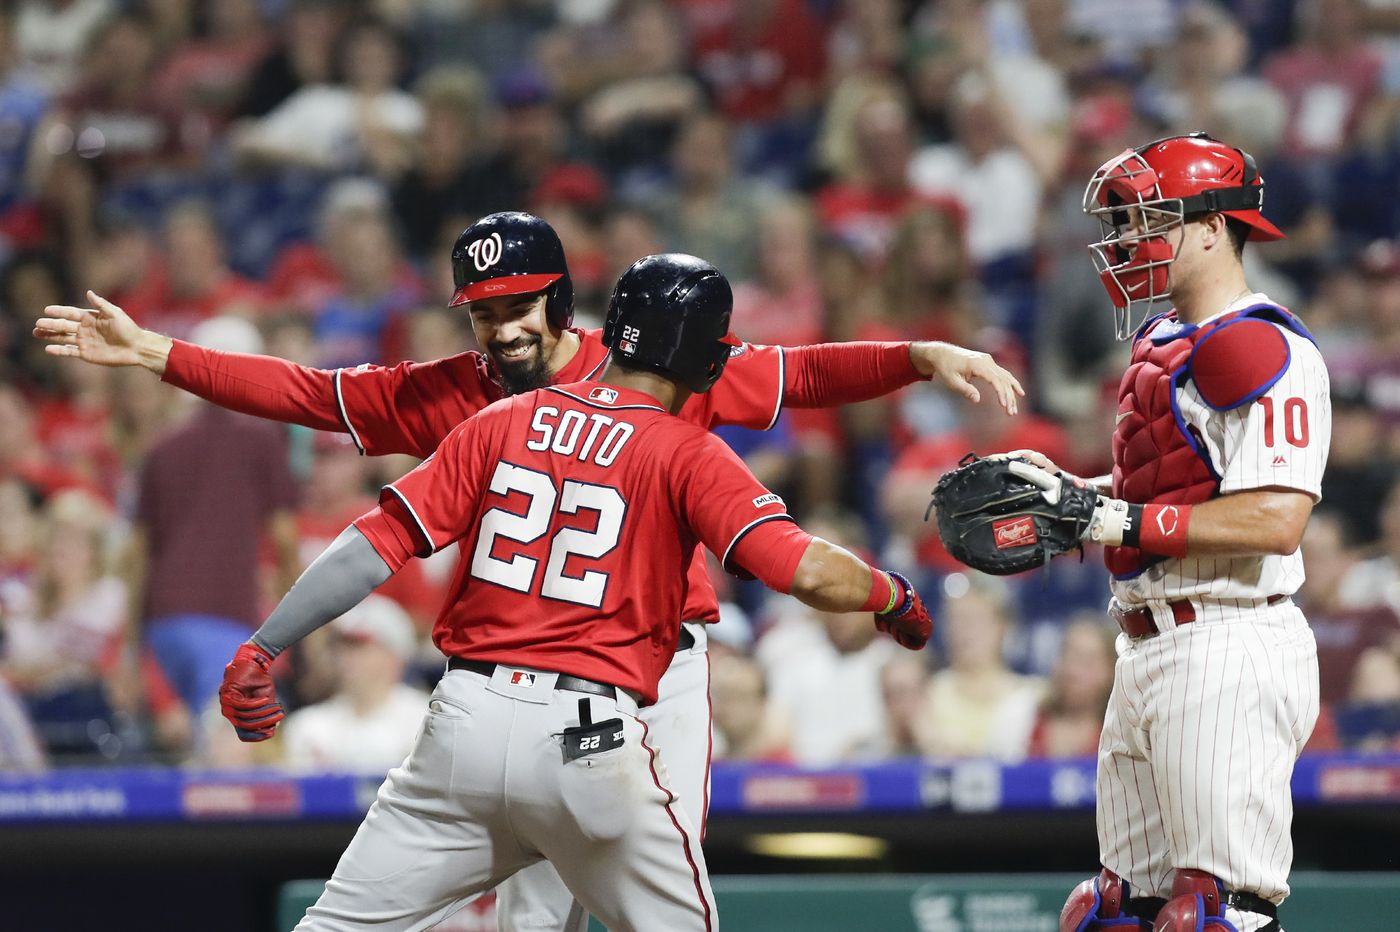 Phillies lose to Nationals as Hector Neris surrenders go-ahead home run in ninth inning